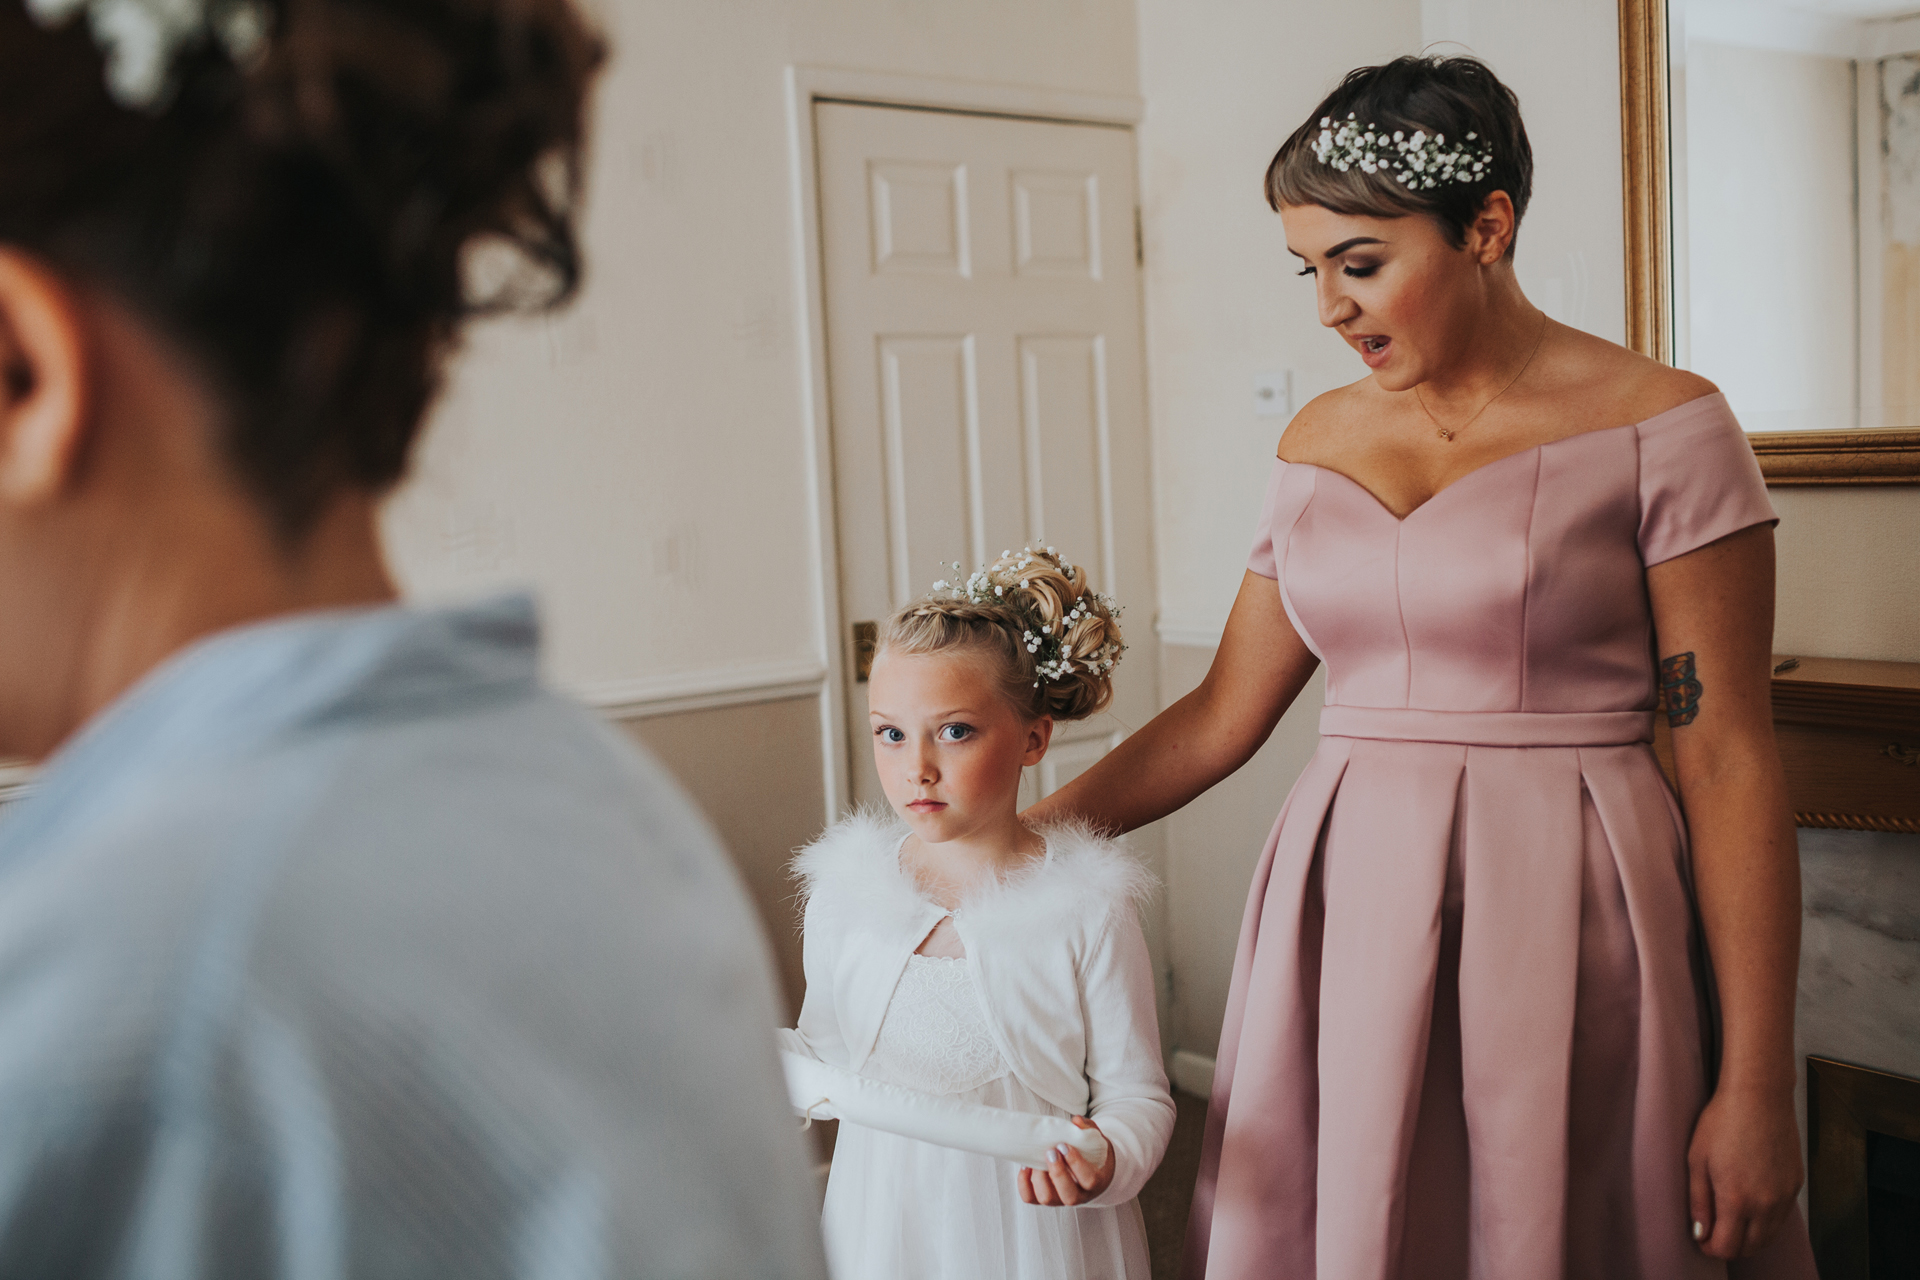 Flower girl watching bride getting ready.